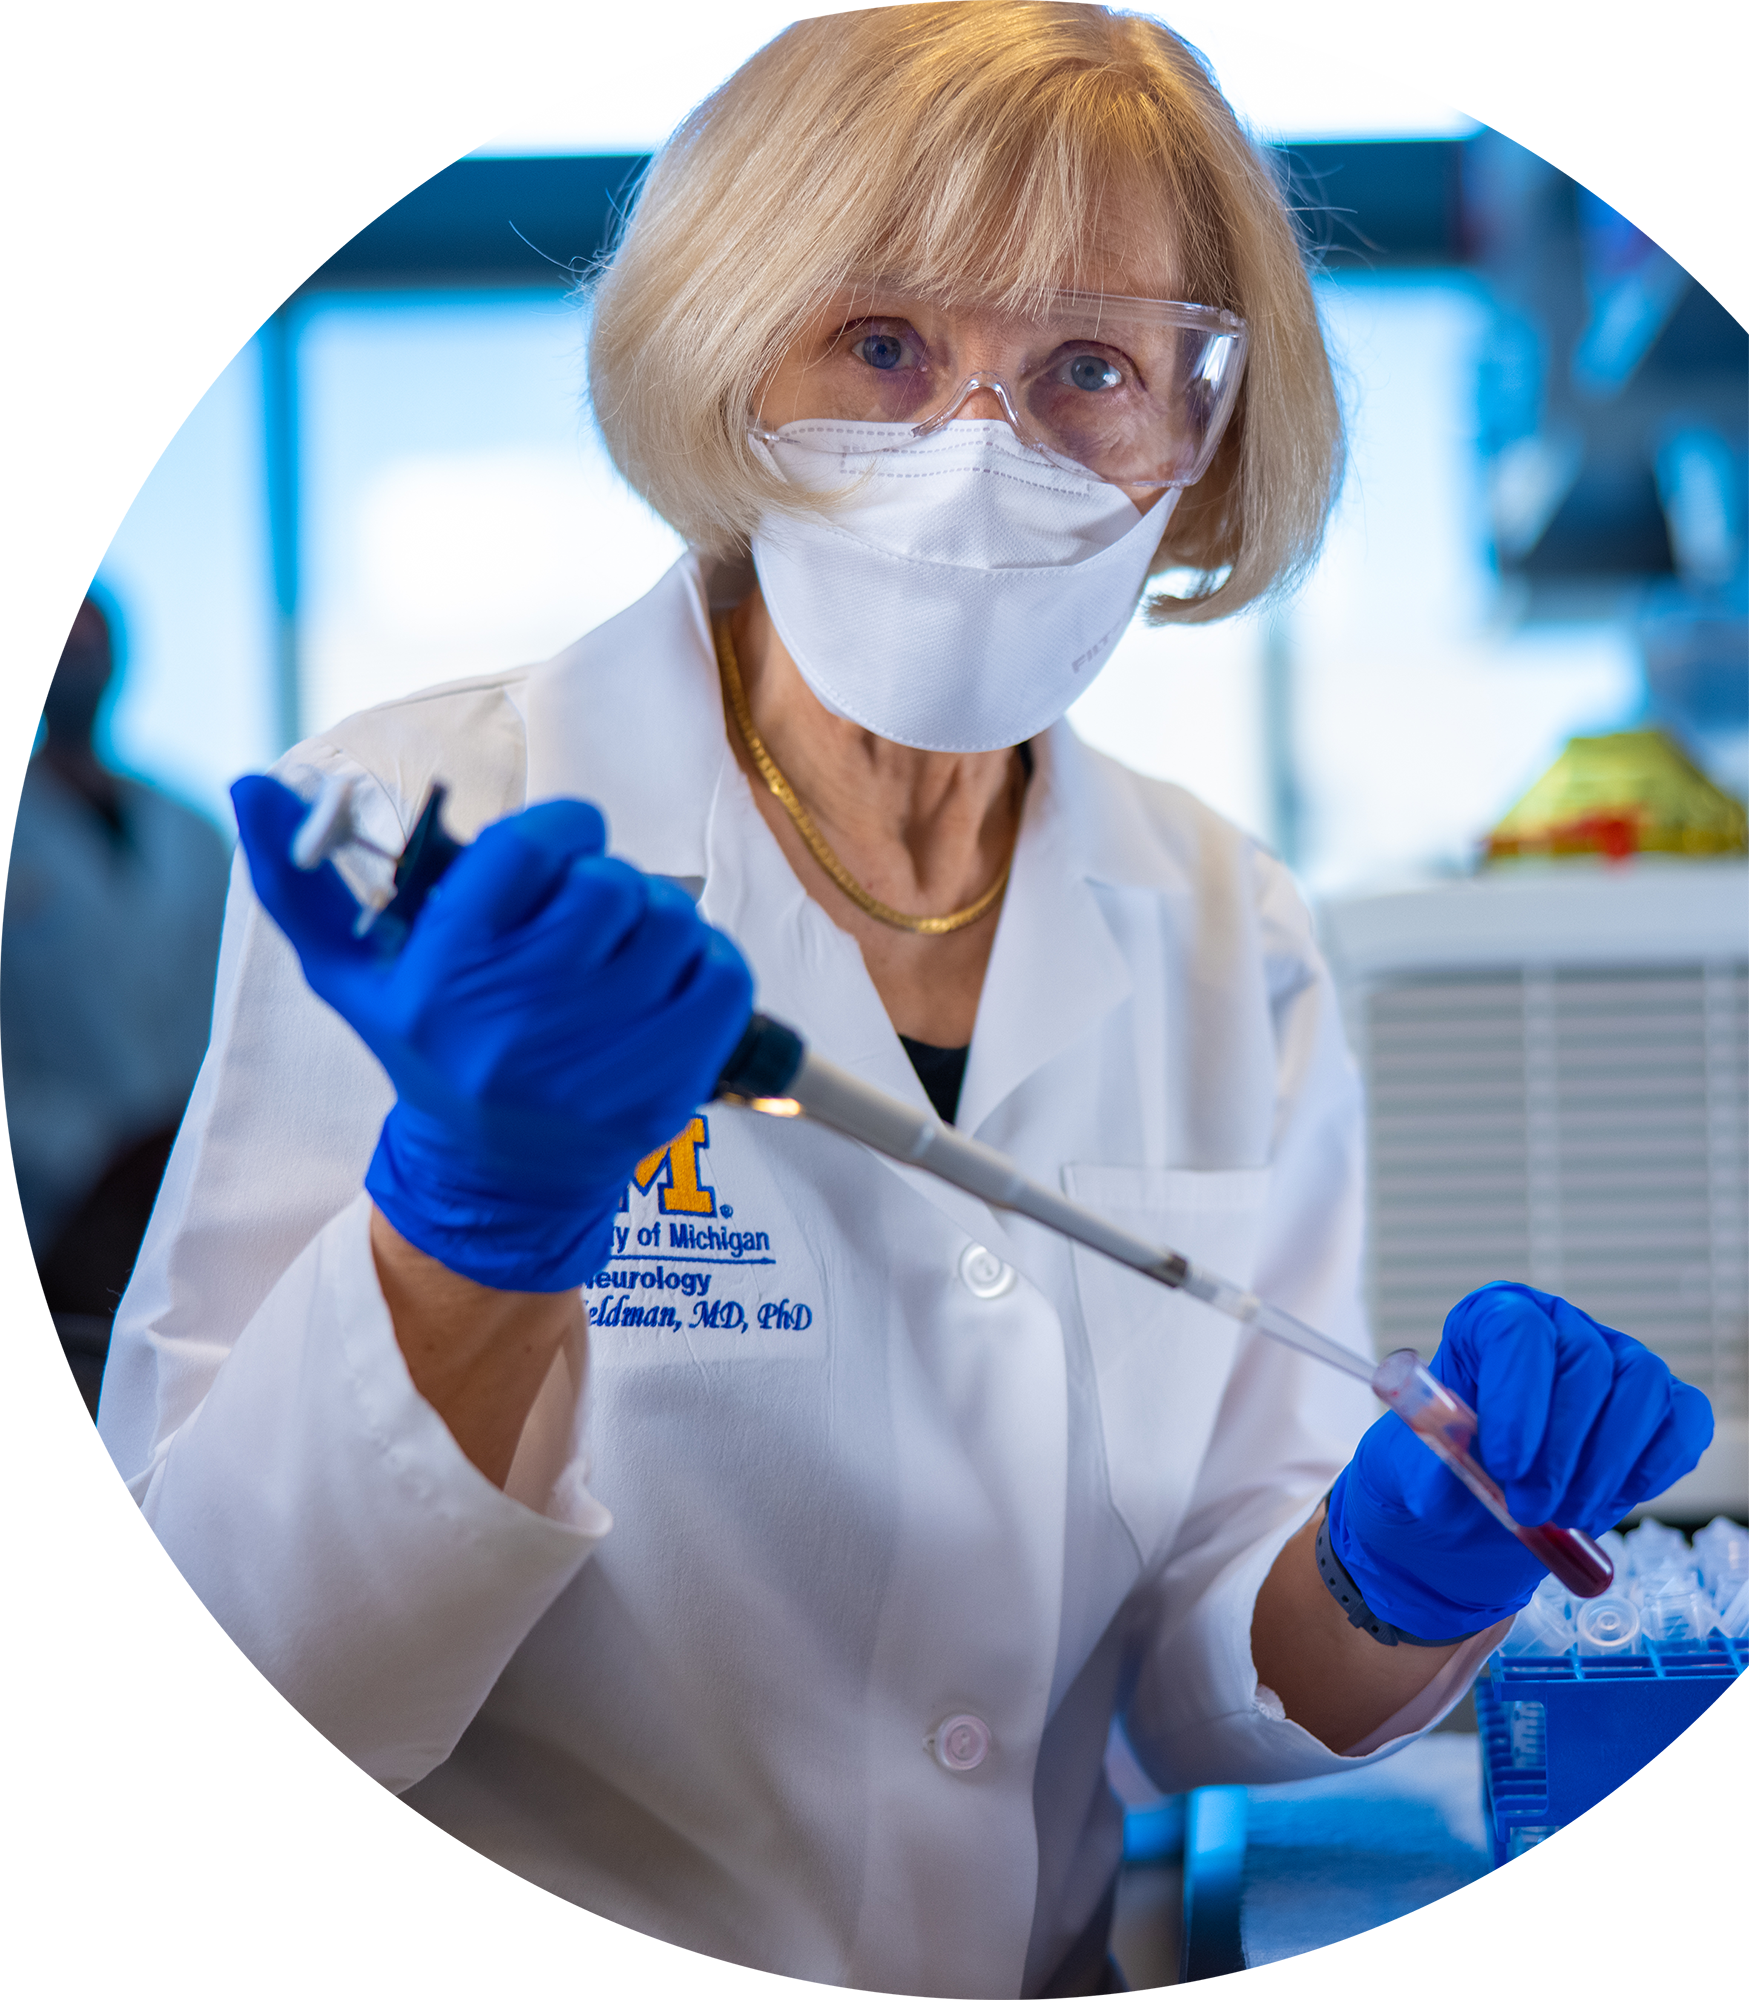 Michigan Medicine NeuroNetwork for Emerging Therapies Director Dr. Eva Feldman working in the lab with a face mask image